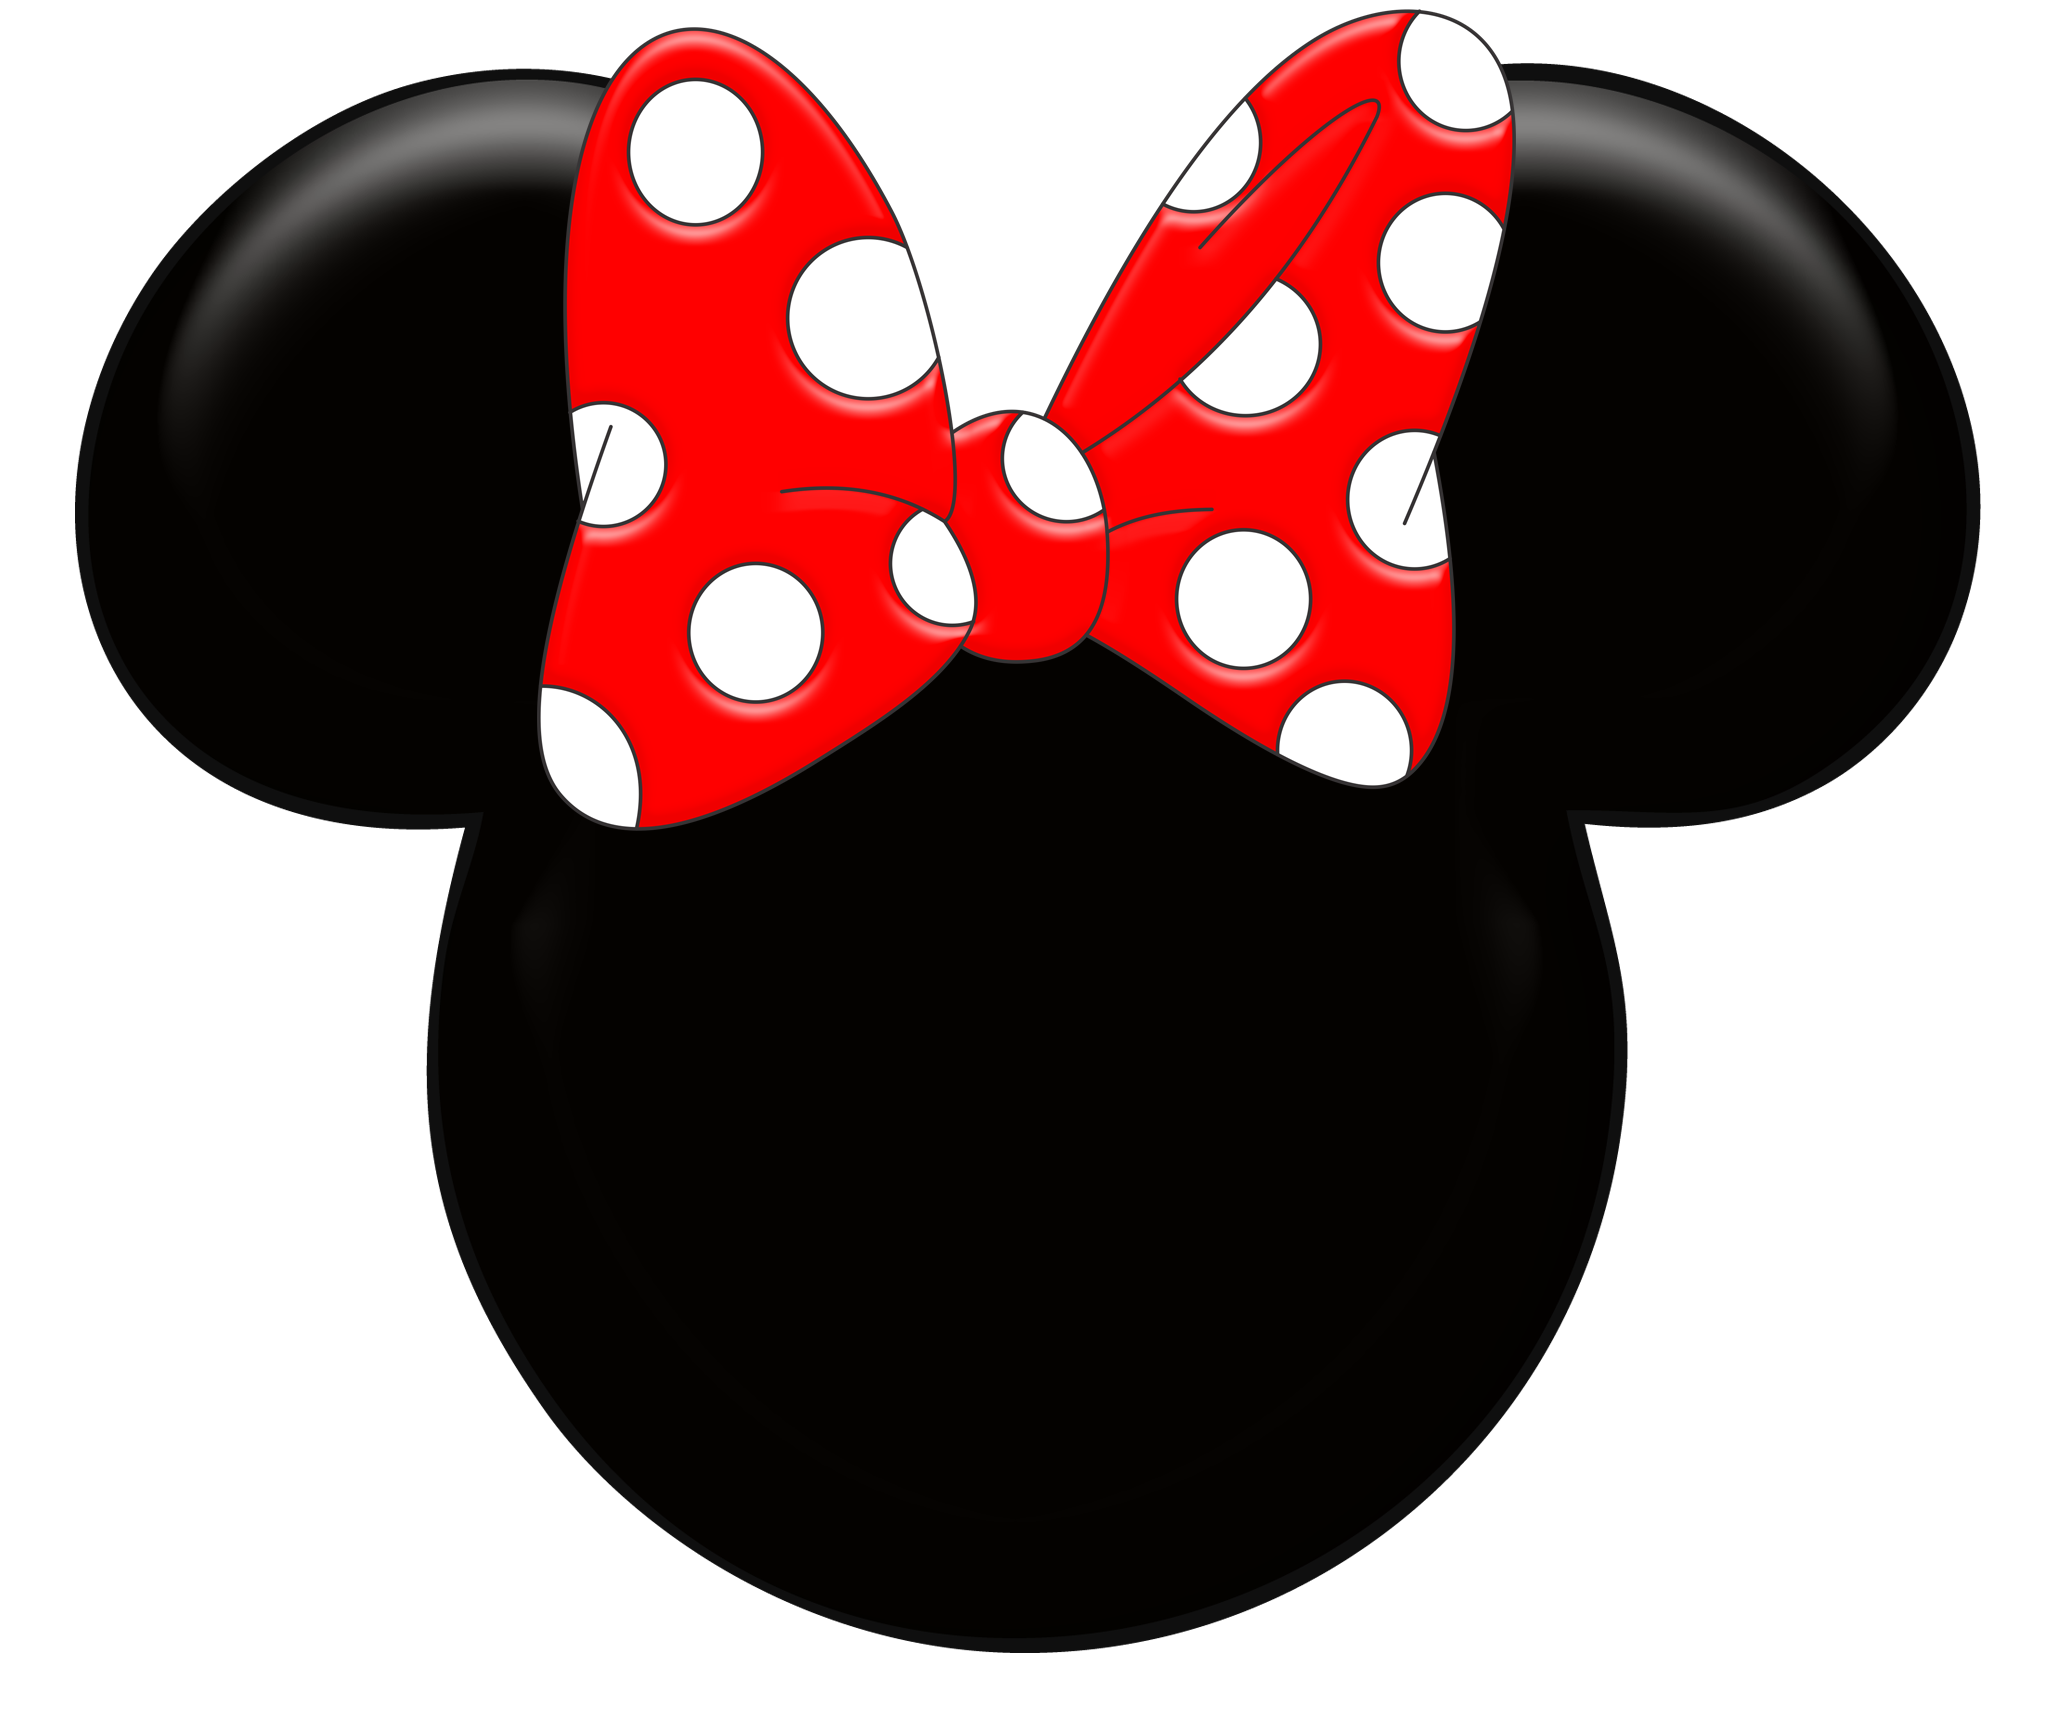 Red wallpaper clipart panda. Minnie mouse face png vector transparent stock